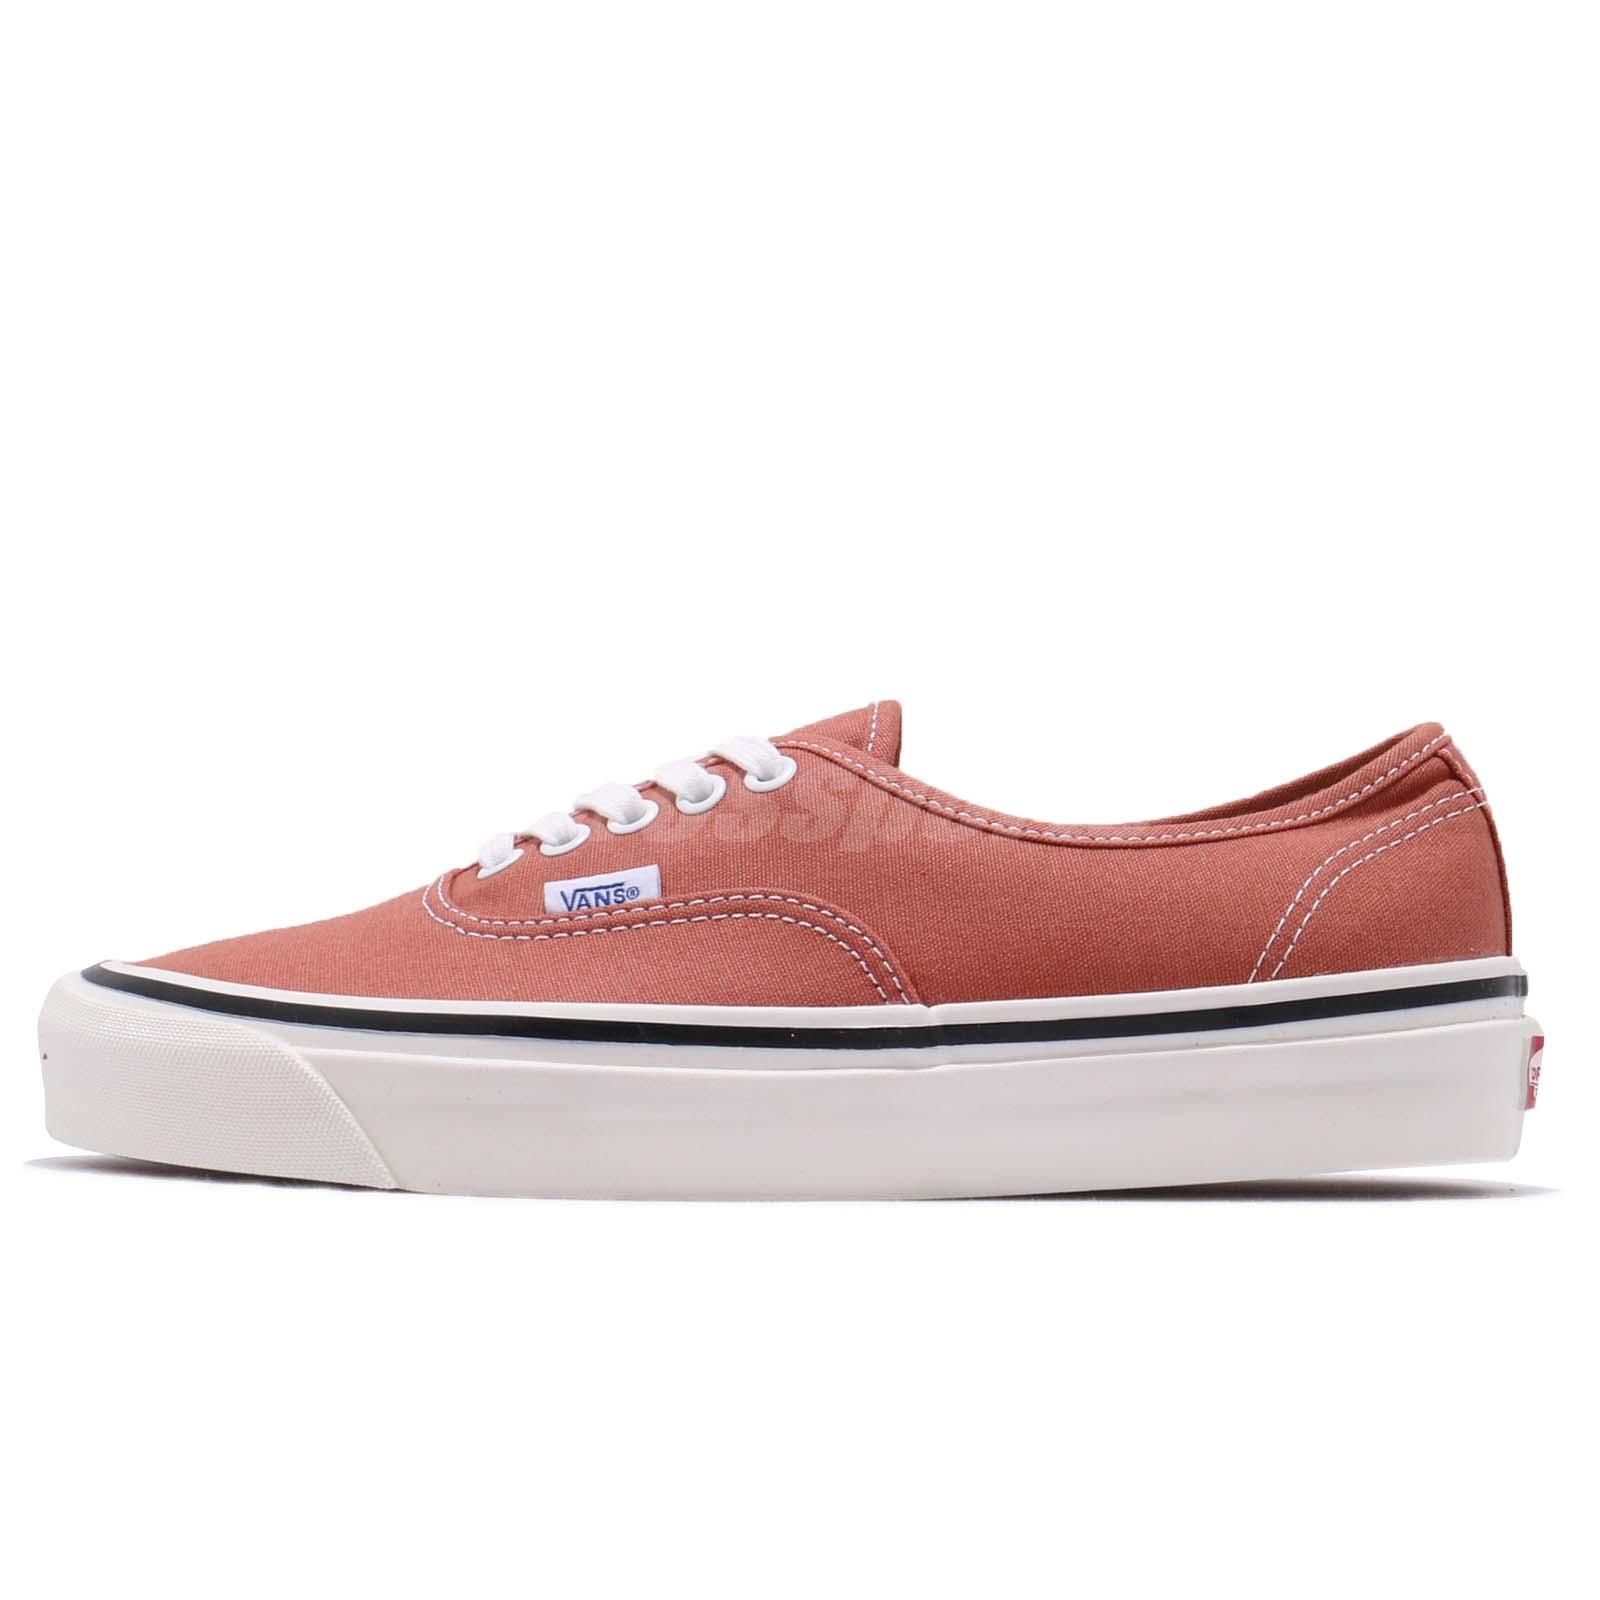 de8992054f Vans Authentic 44 DX Anaheim Factory OG Rust Men Skate Boarding Shoes  72010169